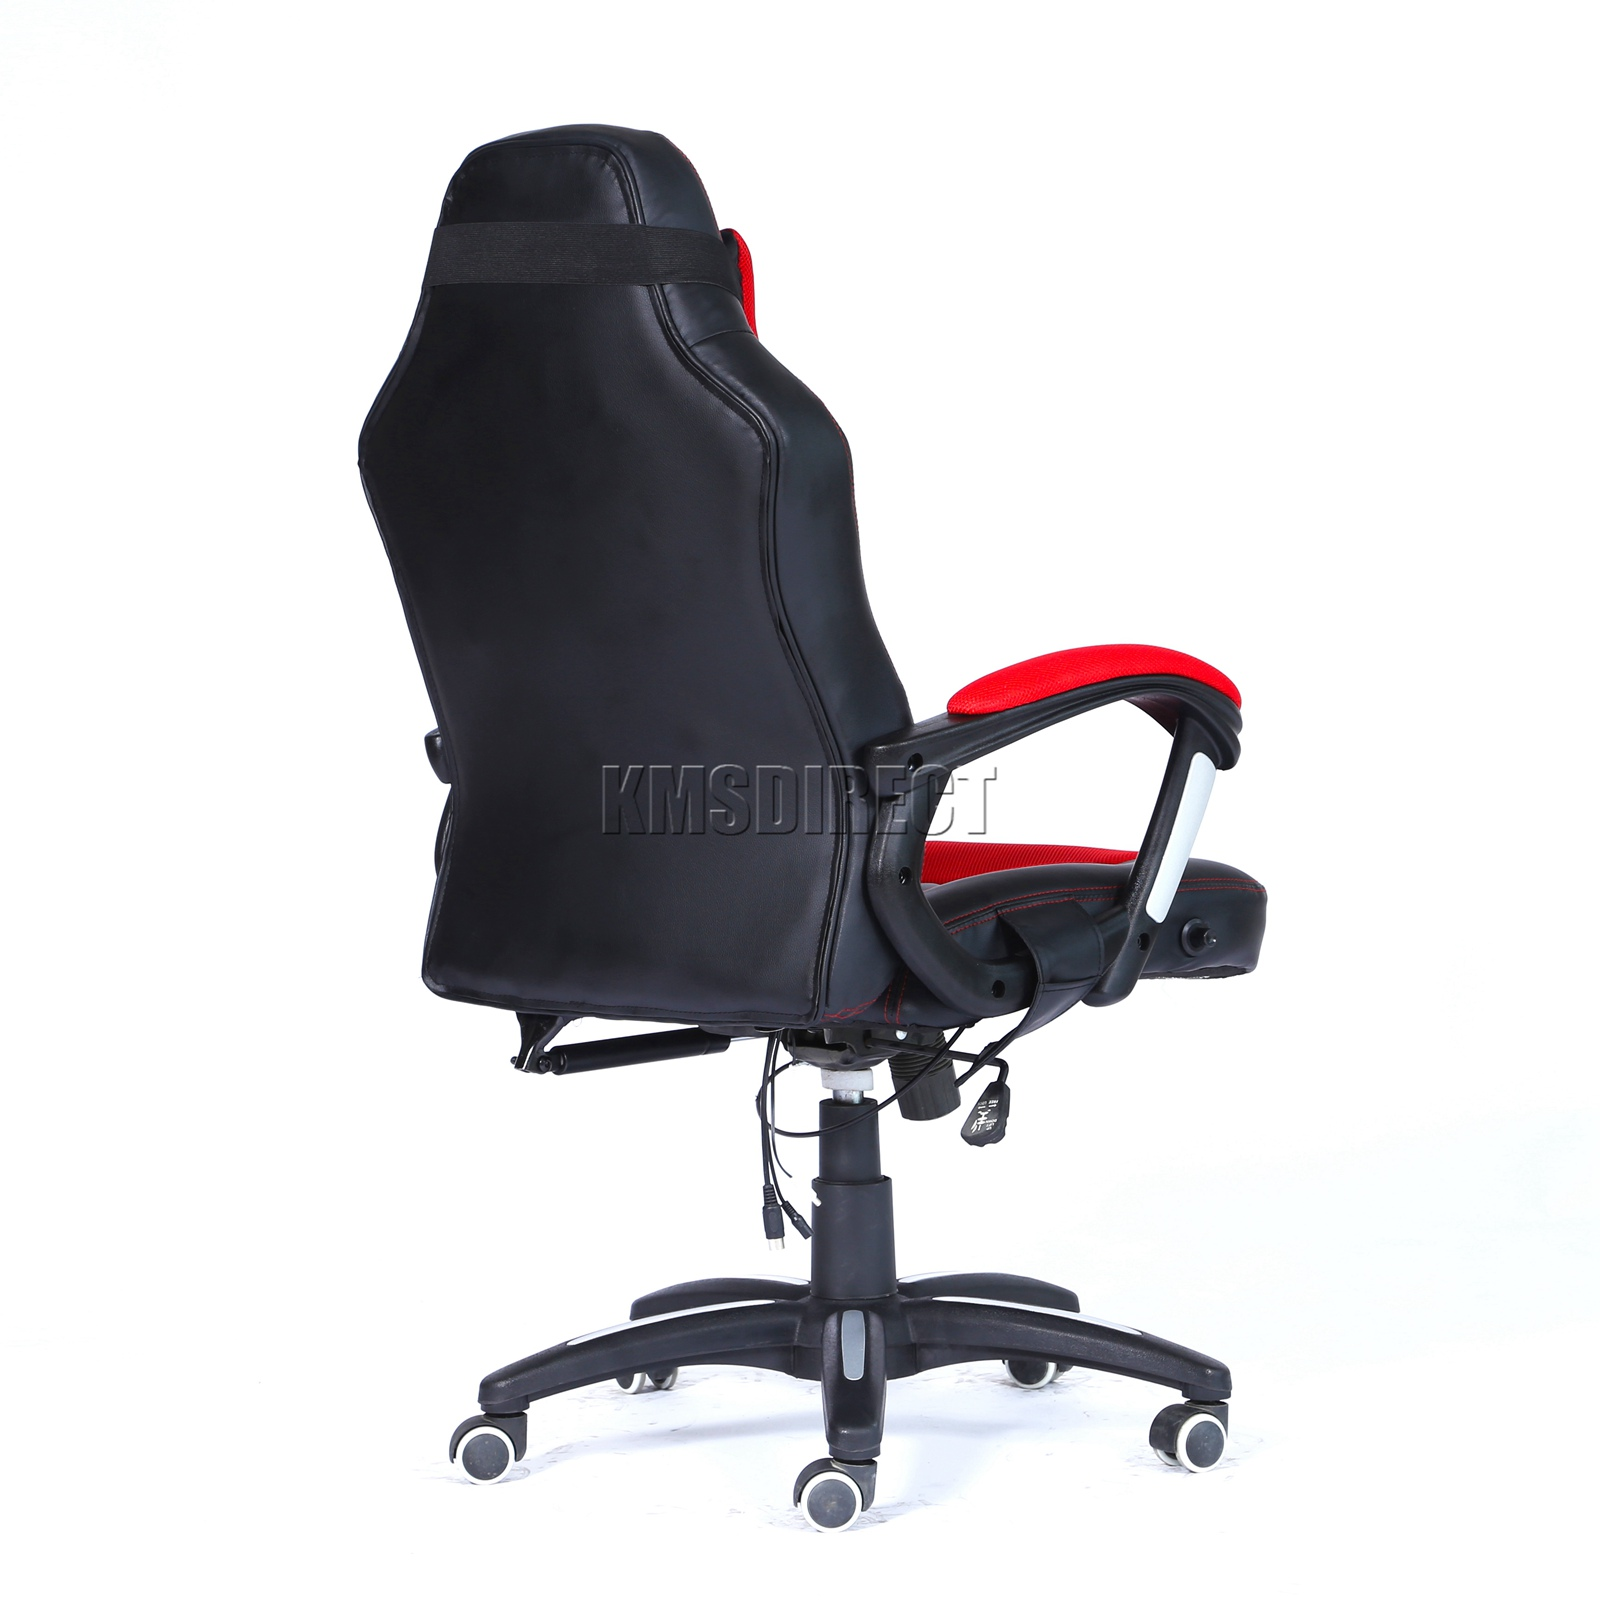 WestWood-Heated-Massage-Office-Chair-Gaming-amp-Computer-Recliner-Swivel-MC09 thumbnail 35